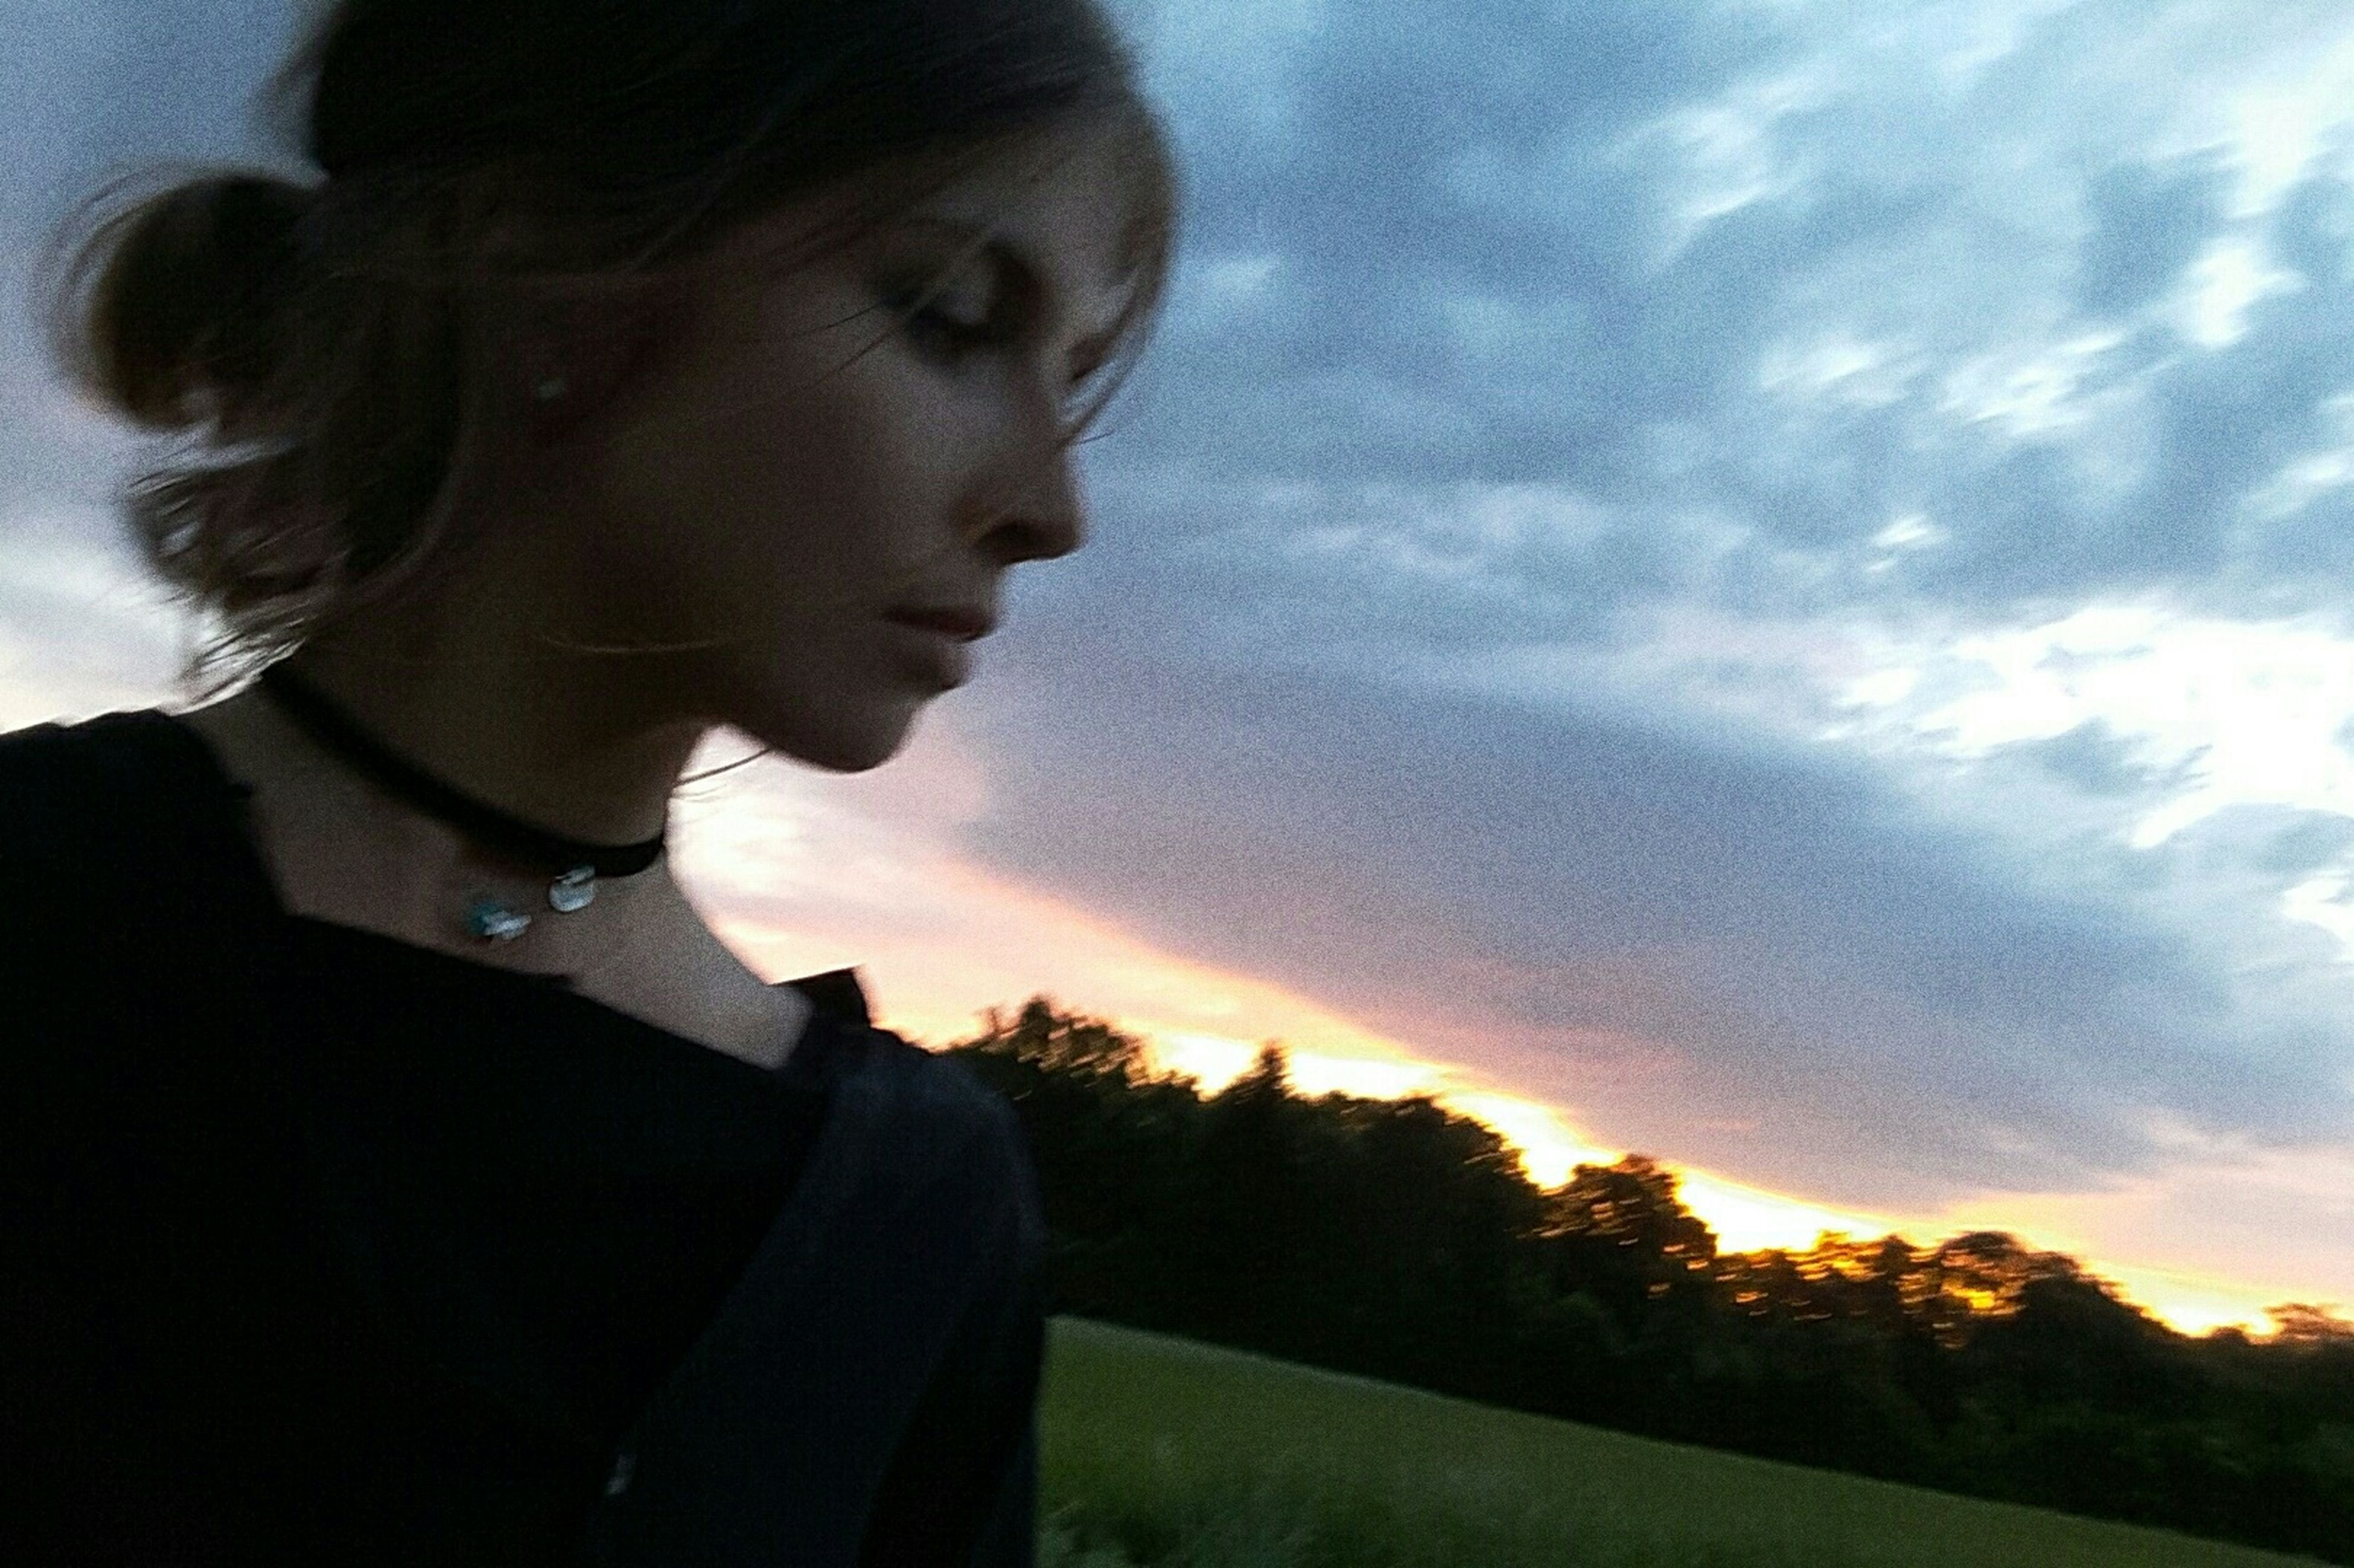 sky, sunset, cloud - sky, nature, outdoors, one person, real people, young adult, day, people